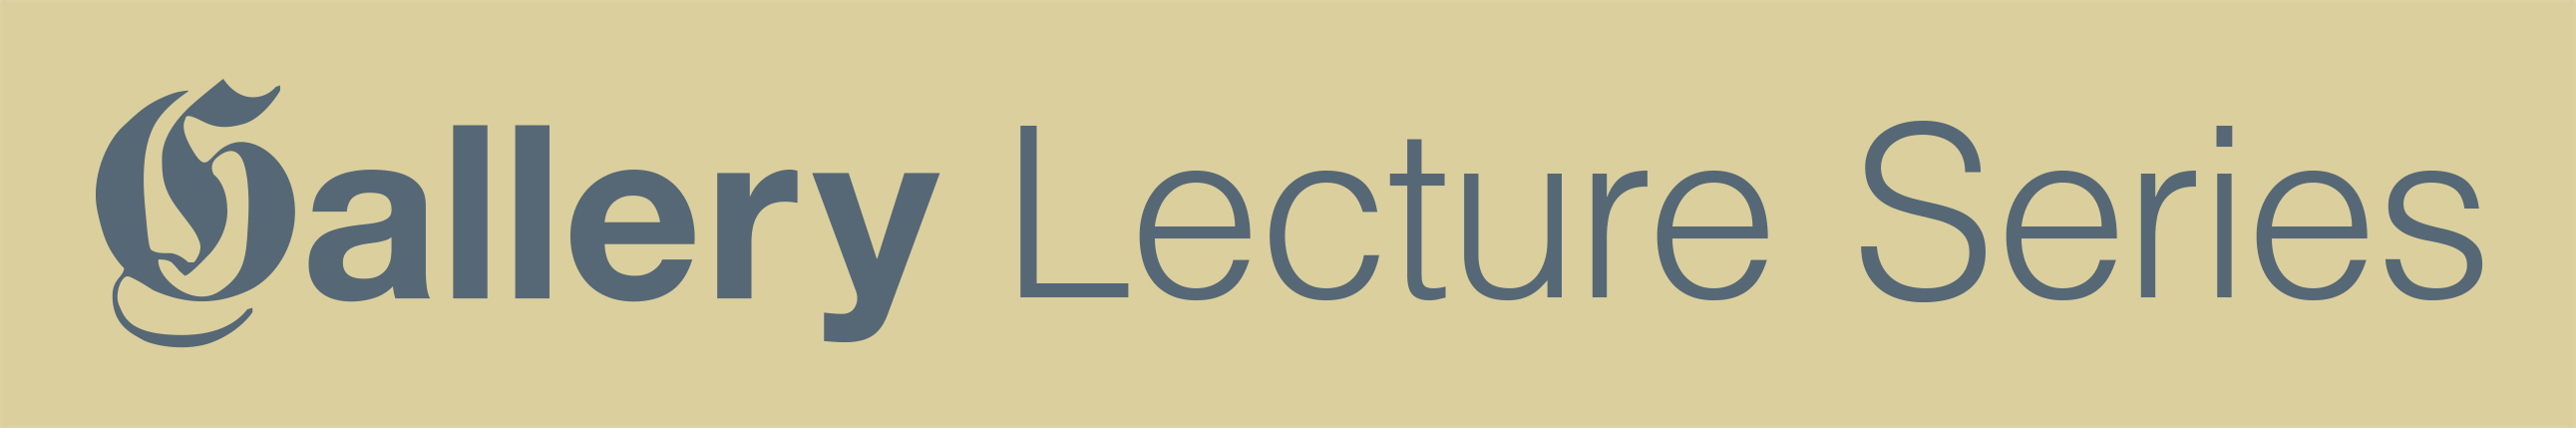 Libraries Lecture Series graphic